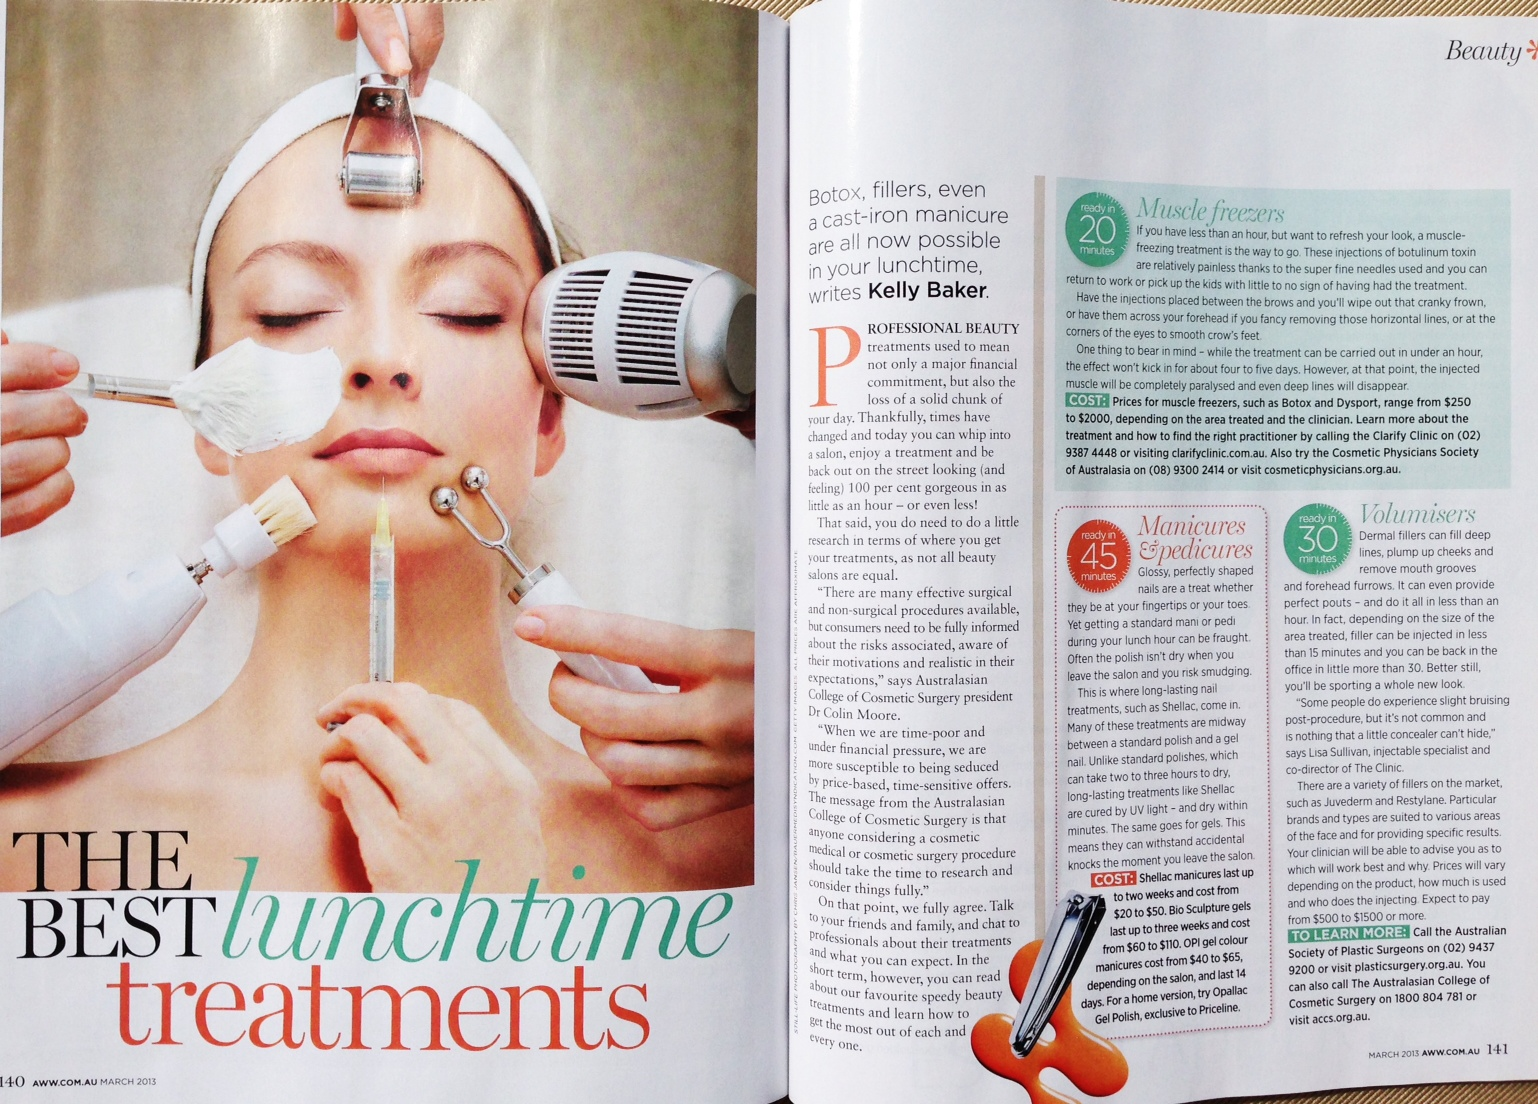 Clarify Clinic in Australian Women's Weekly